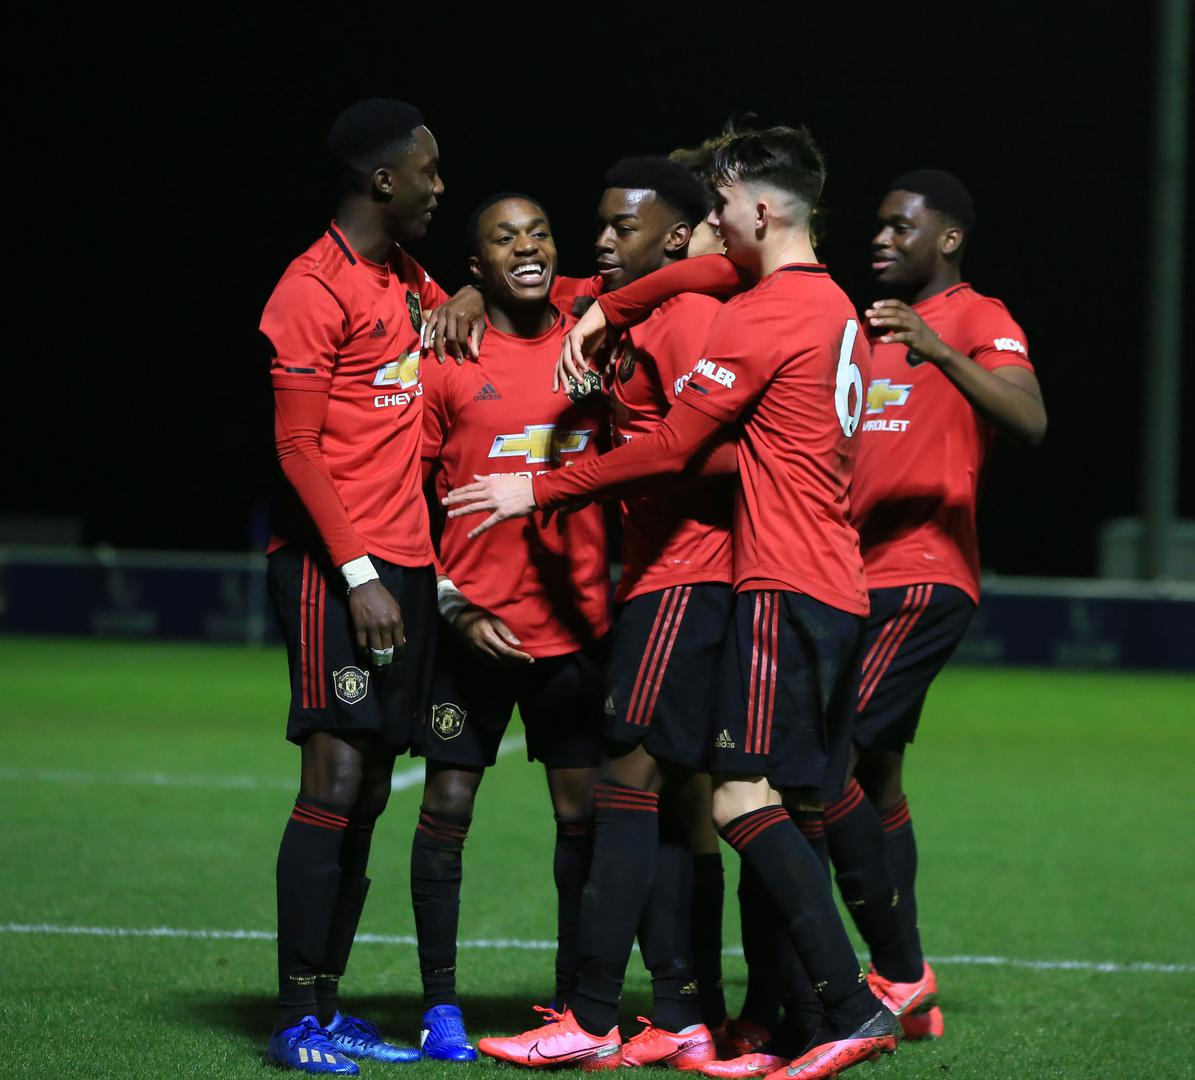 Manchester United Under-18s celebrate a goal against Everton